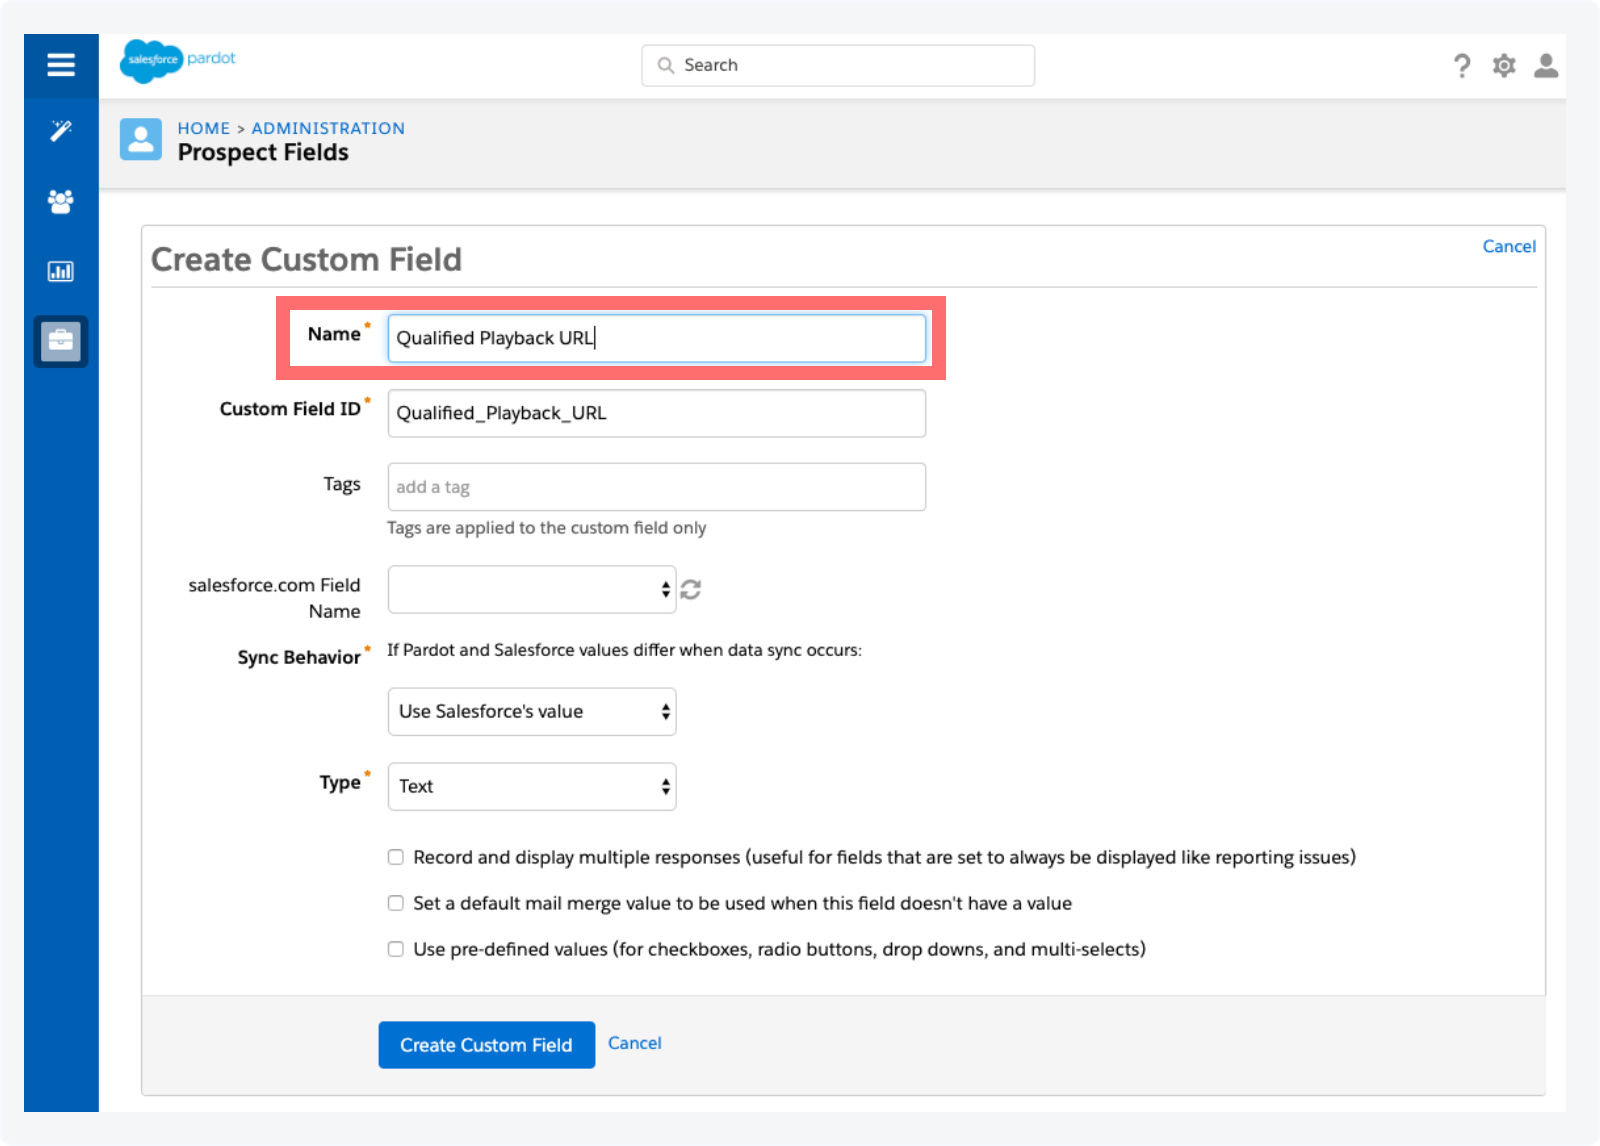 Creating a custom field in pardot to store the playback URL